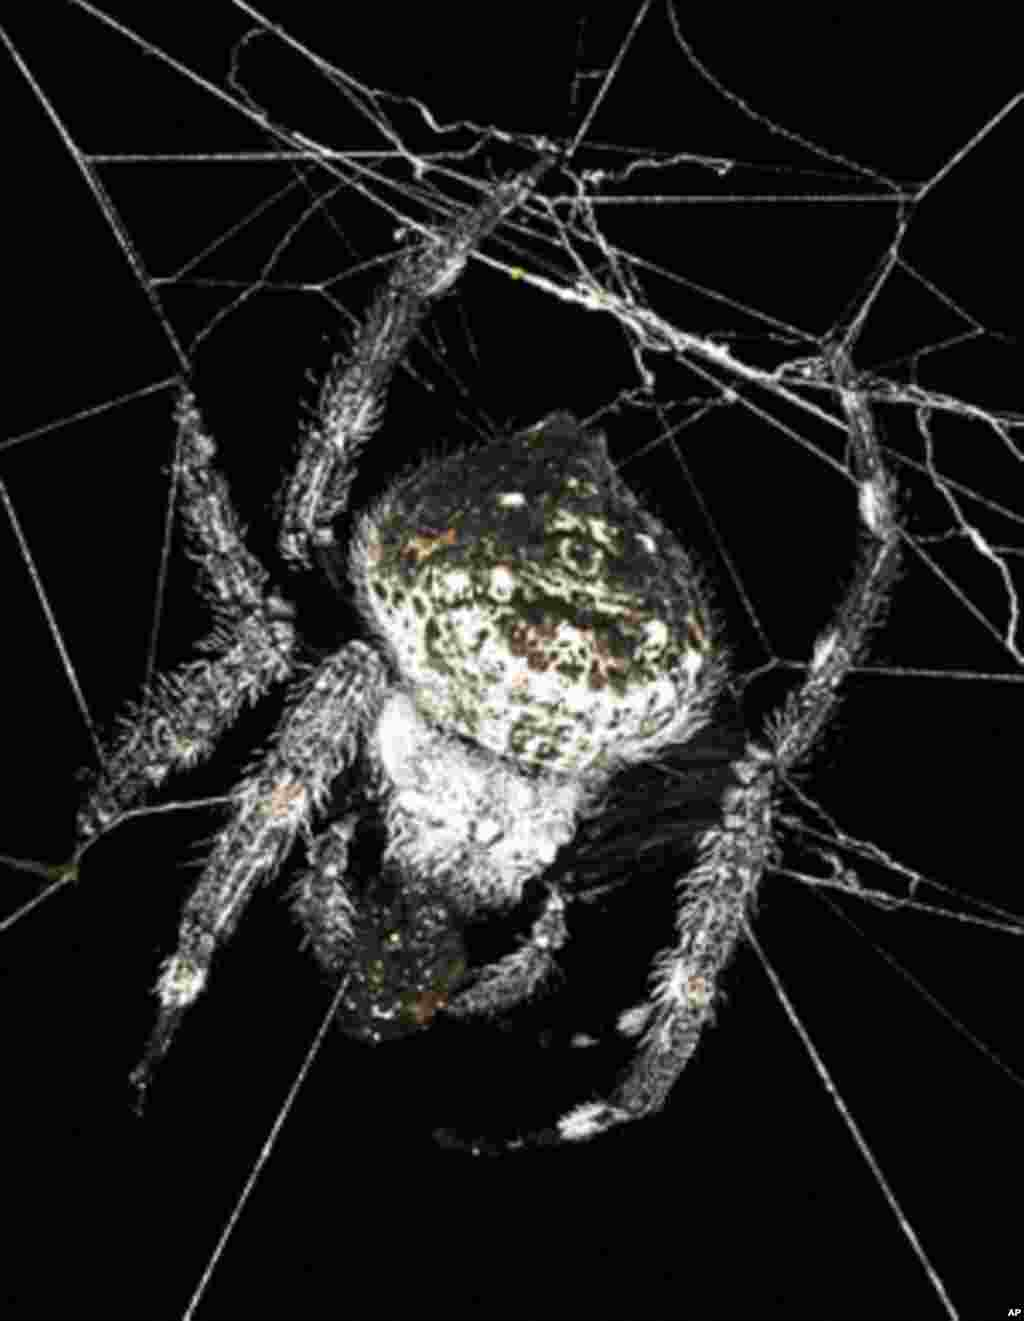 This spider from Madagascar spins durable webs that can span rivers, streams and lakes. (M. Kuntner)